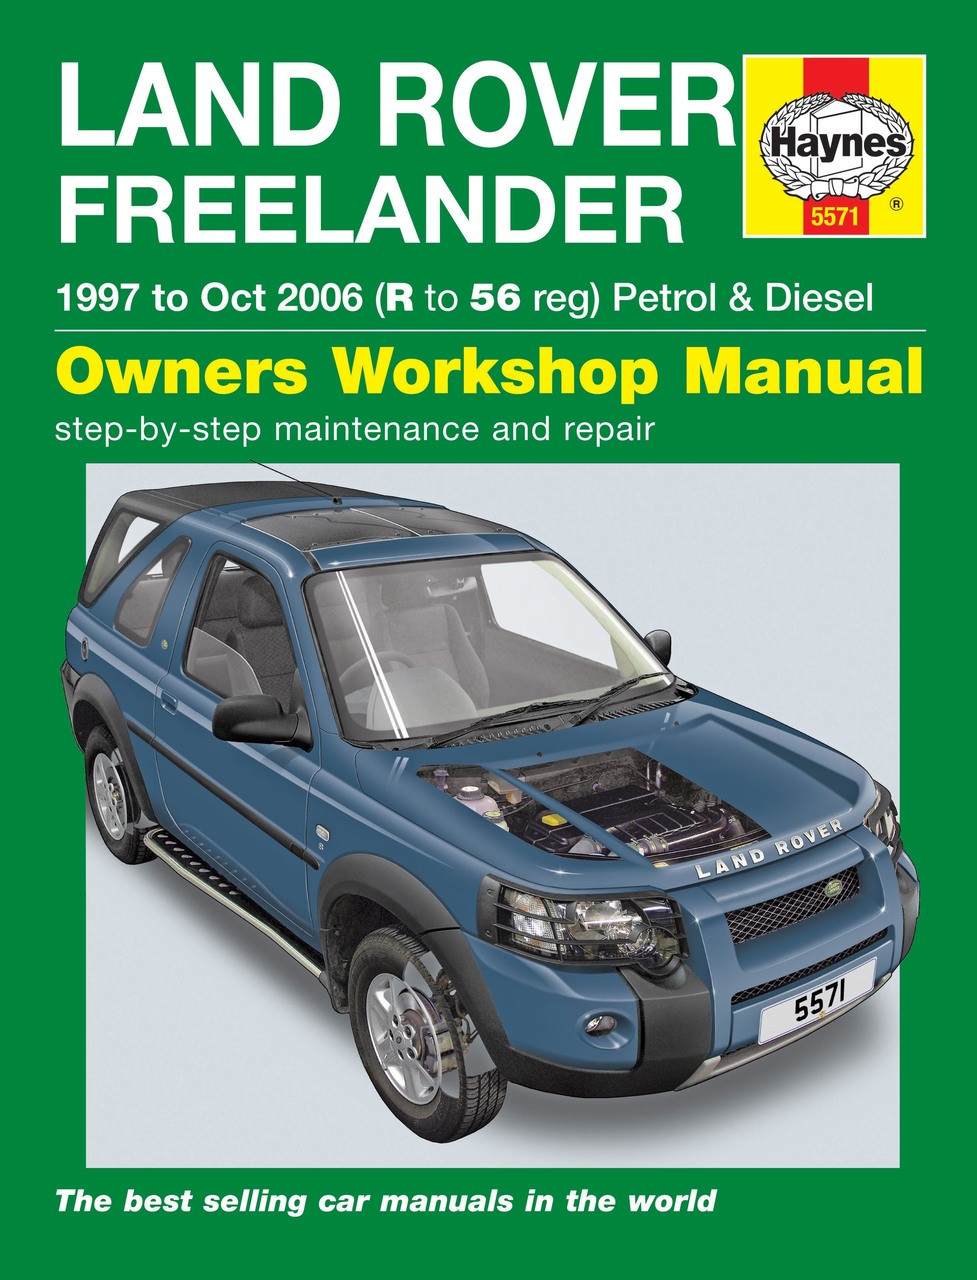 hight resolution of land rover freelander 1997 2006 workshop manual repair diagrams for 2004 land rover freelander engine transmission